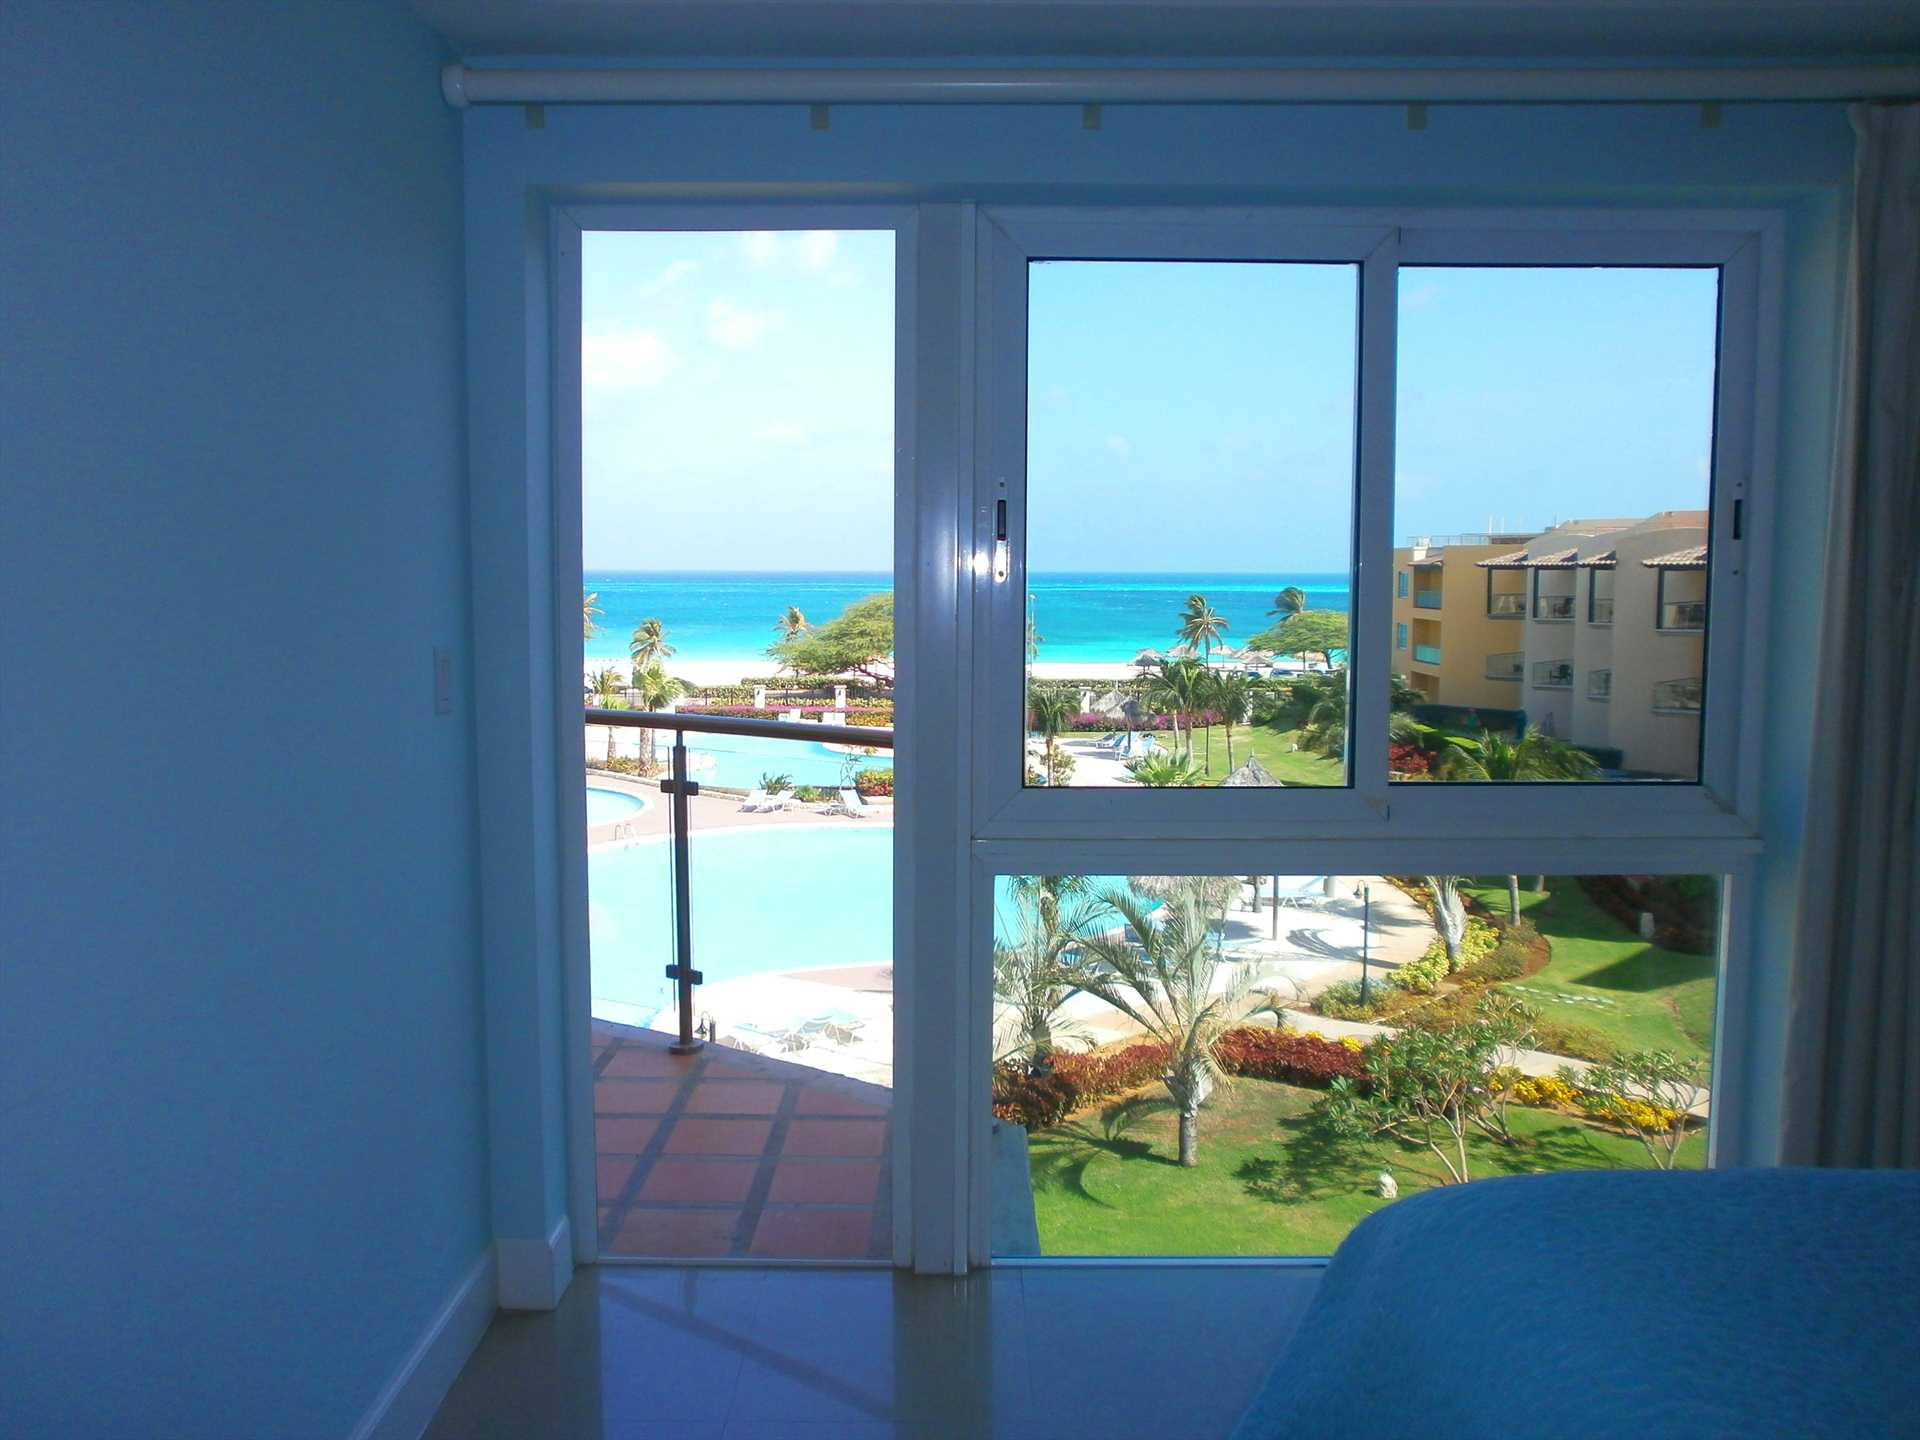 Direct access to balcony from master bedroom with spectacular ocean view!